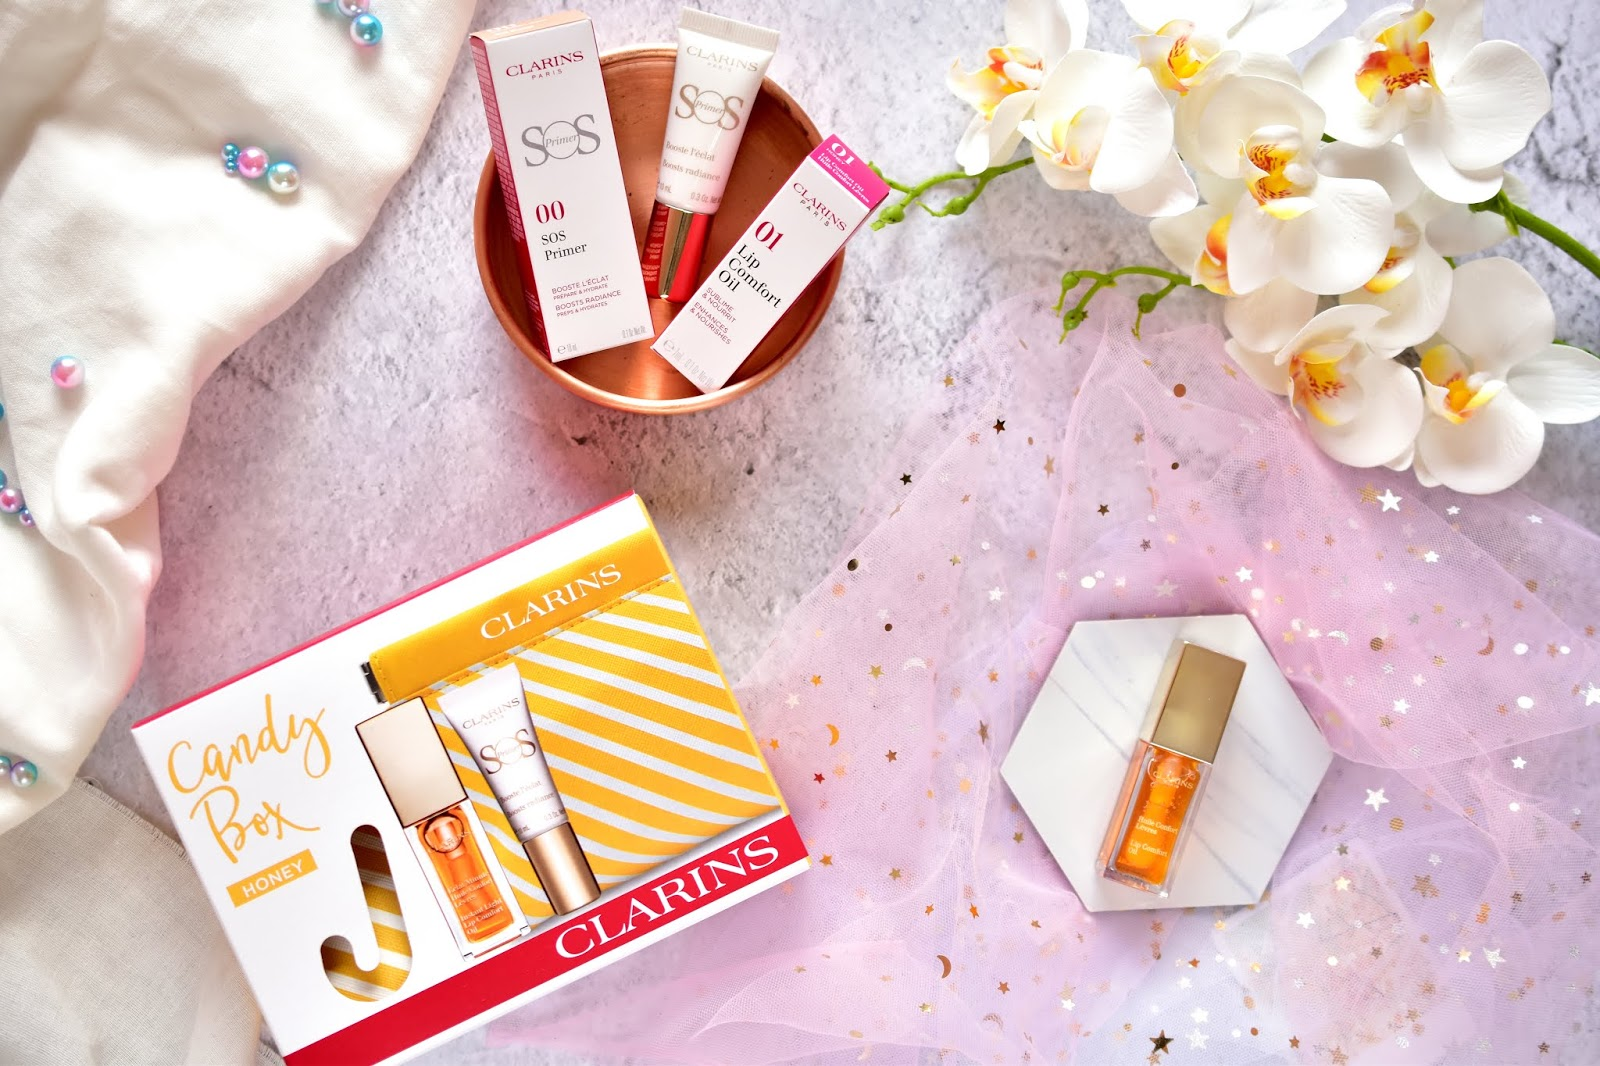 Clarins Honey Lip Oil